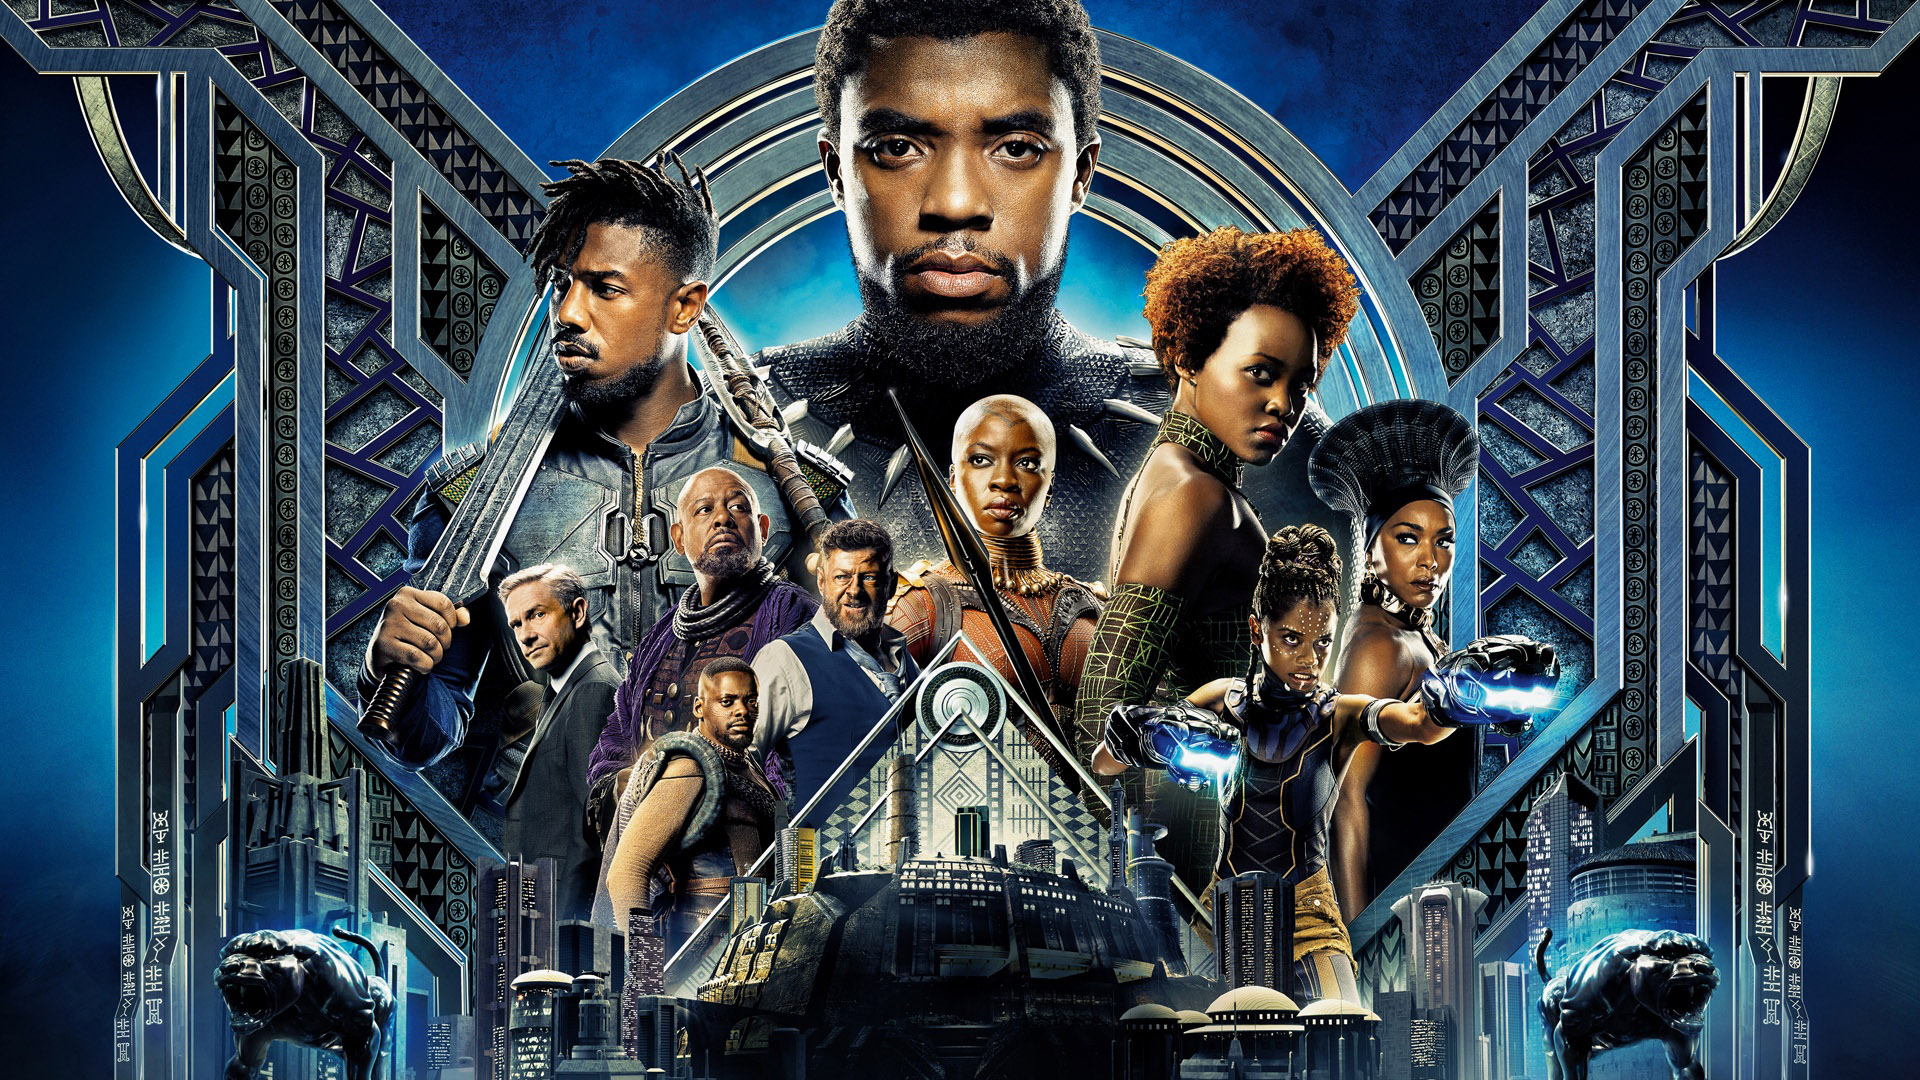 Cinematic ambition meets visual artistry… - The T'Challa-led entry in the Marvel Cinematic Universe represents a lot of milestones, but the sheer artistry on display makes it one of the MCU's best.